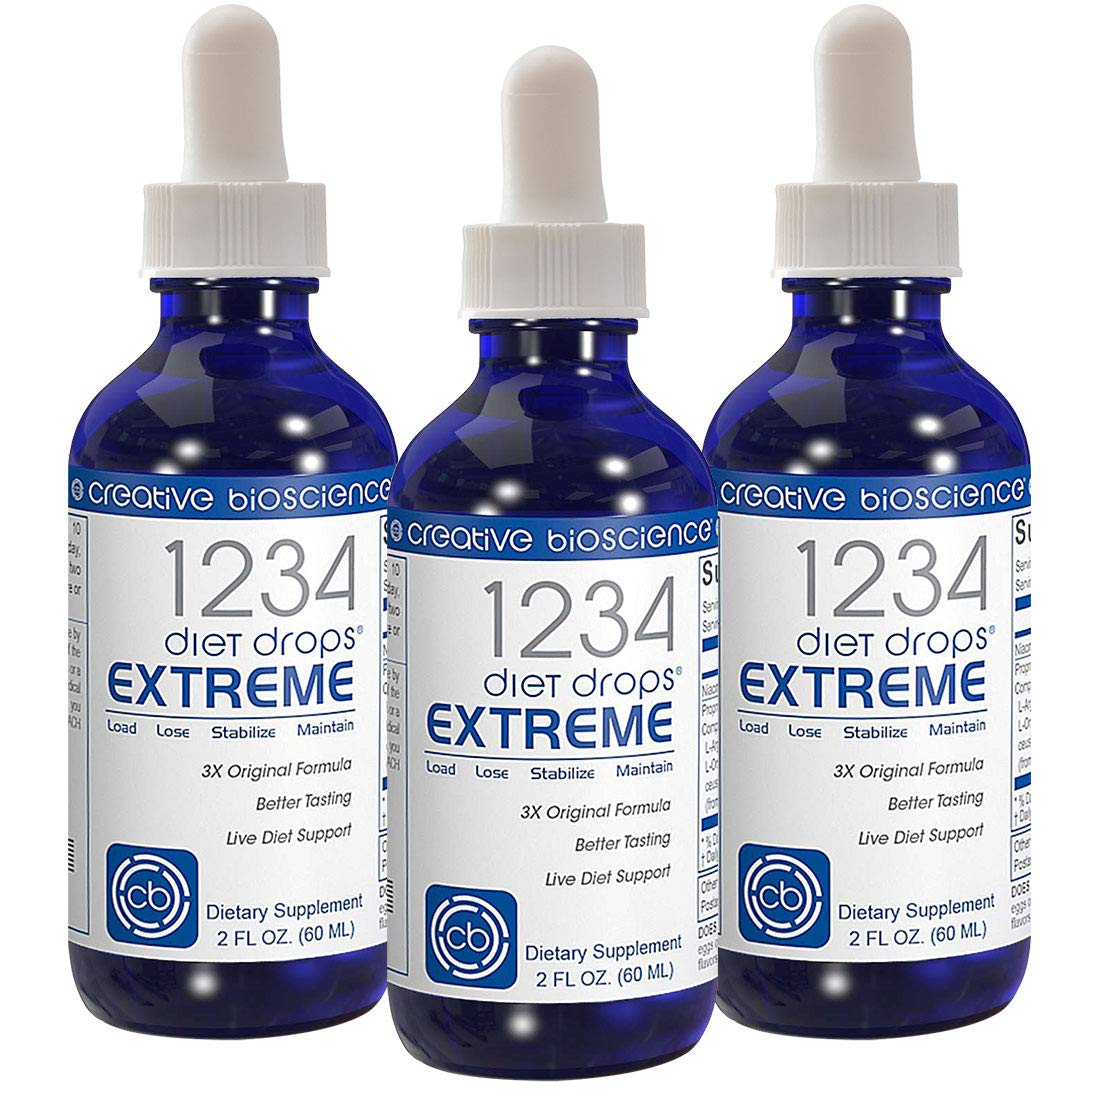 1234 Diet Drops Extreme 3 Bottle Pack